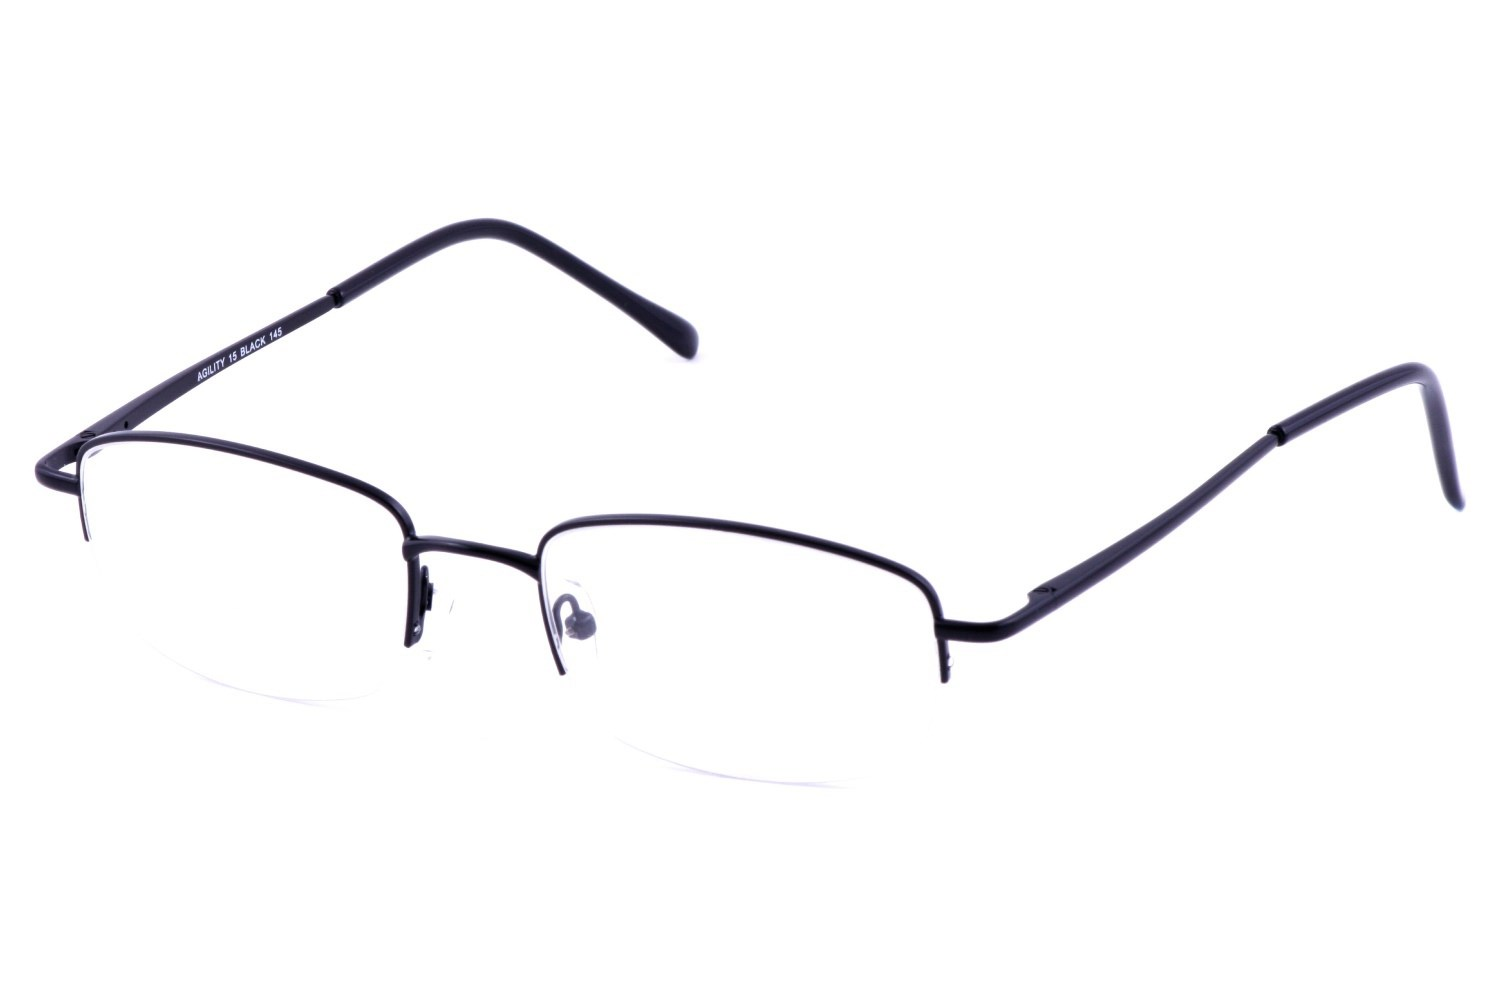 Agility 15 Prescription Eyeglasses Frames